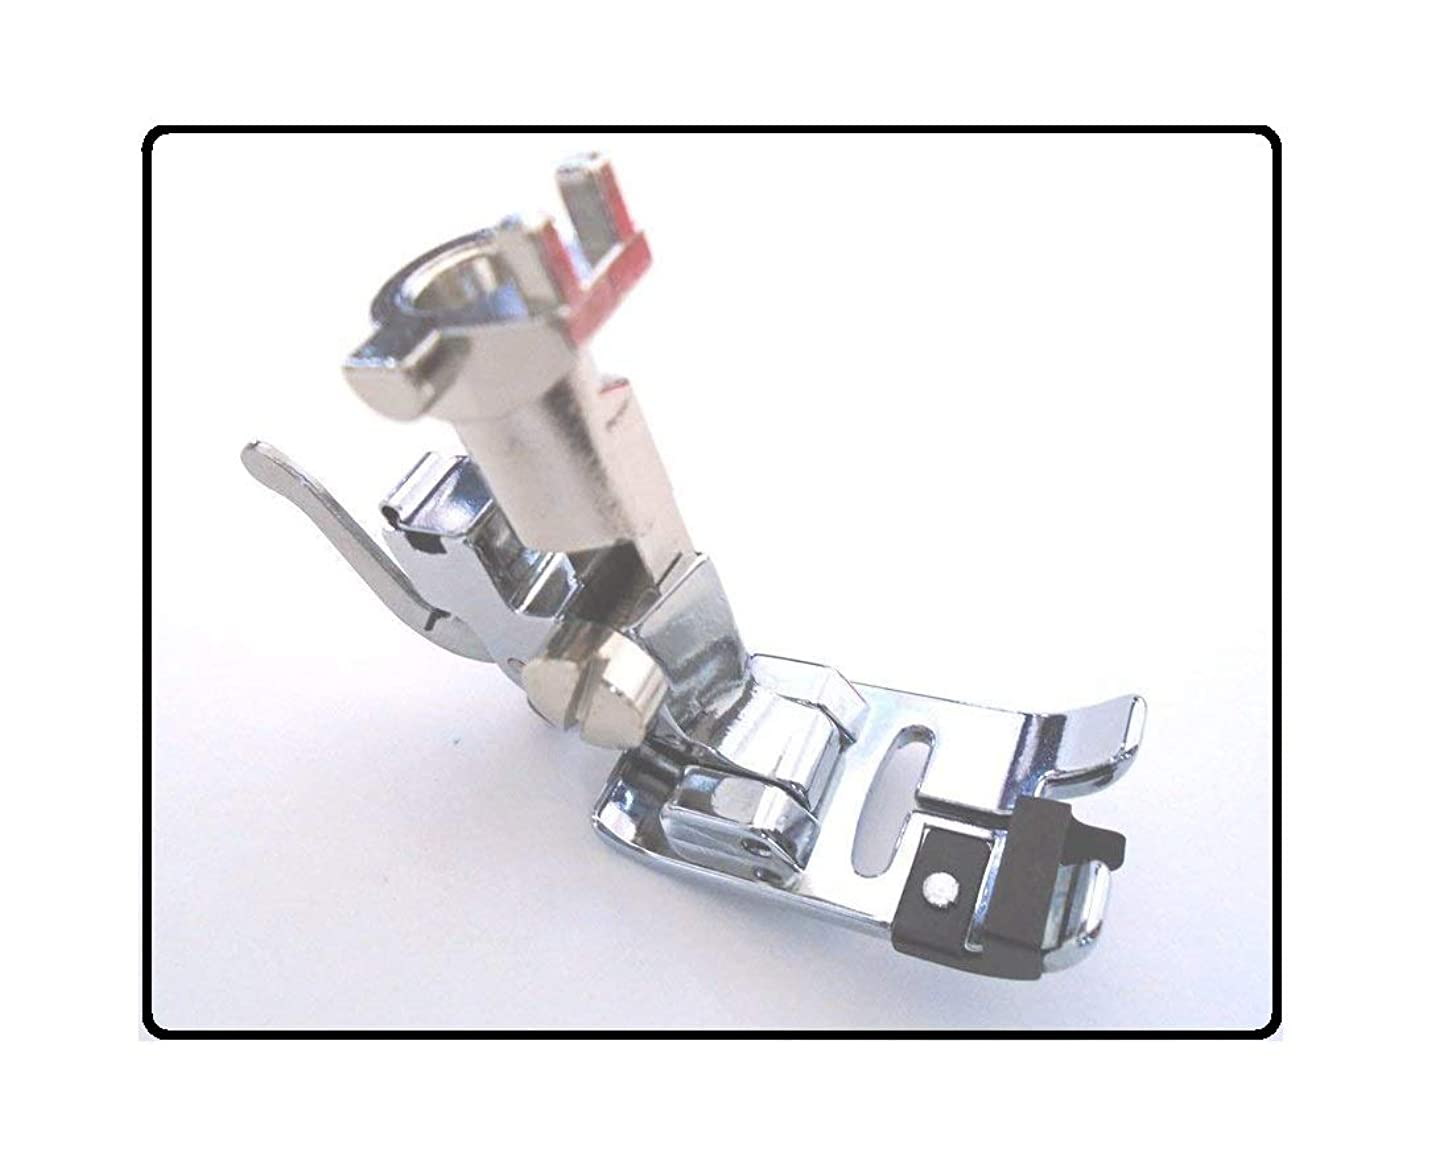 NGOSEW Stitch In The Ditch Foot For Bernina Old Style 530-1630 Sewing Machines